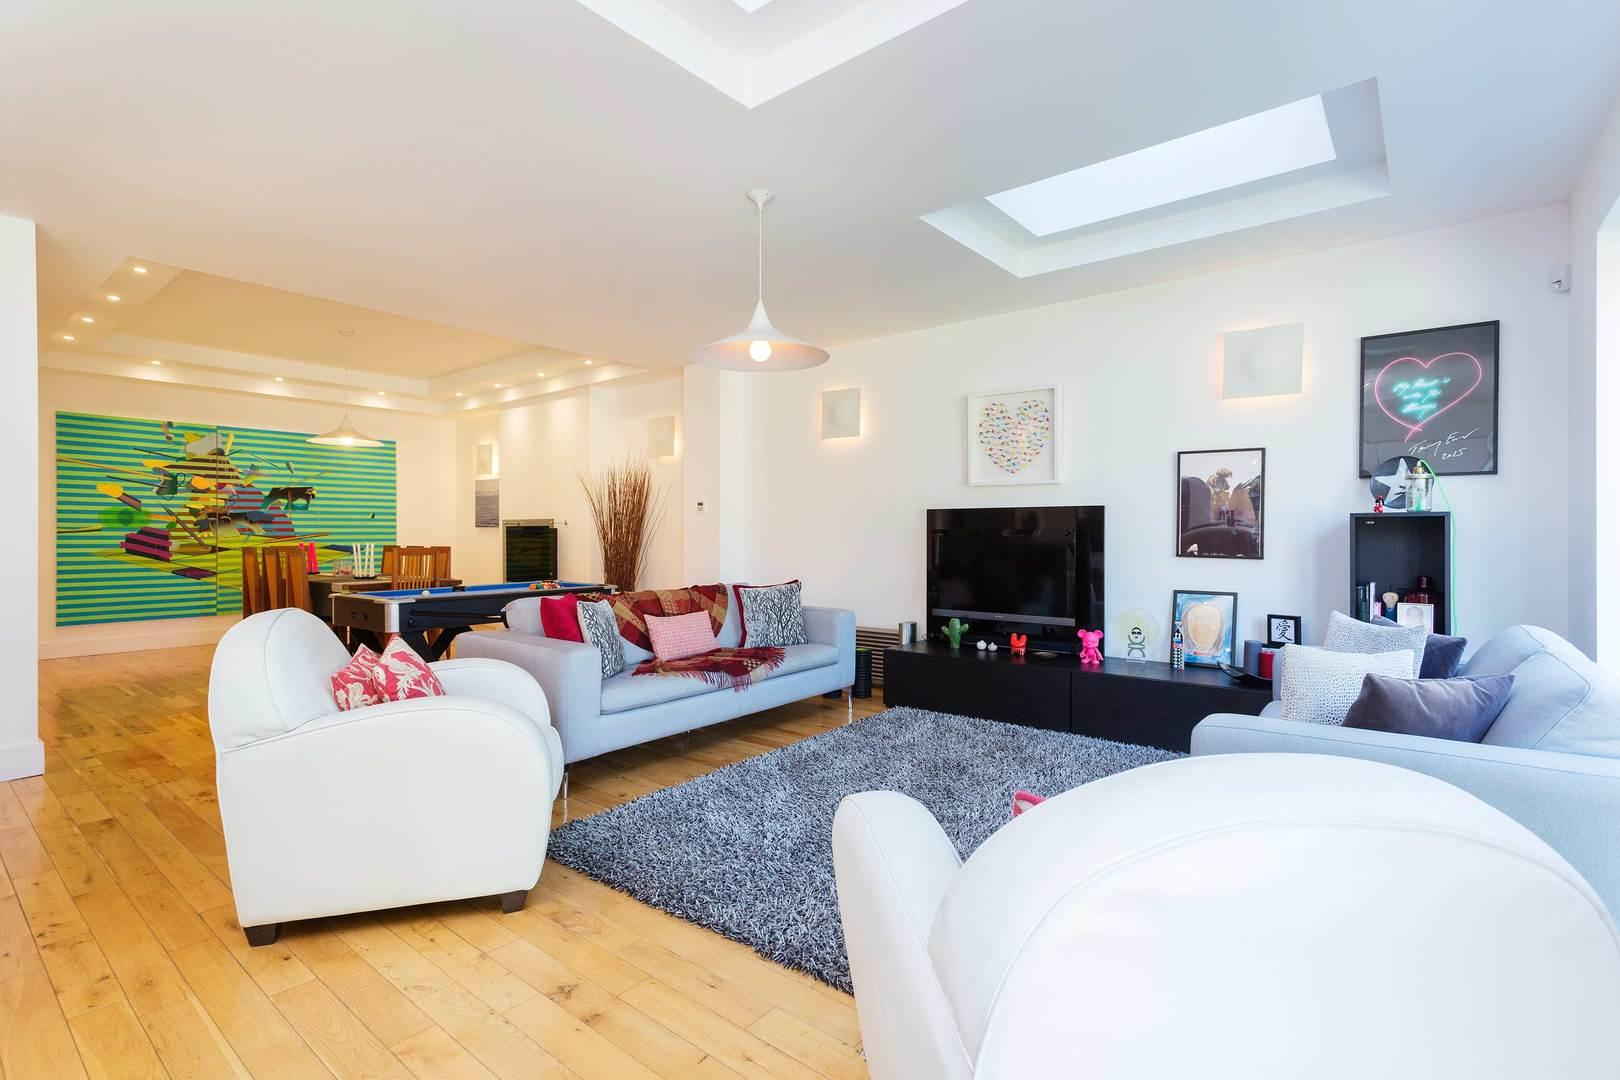 Property Image 2 - Stylish 5 bedroom Family House in Leafy Clapham